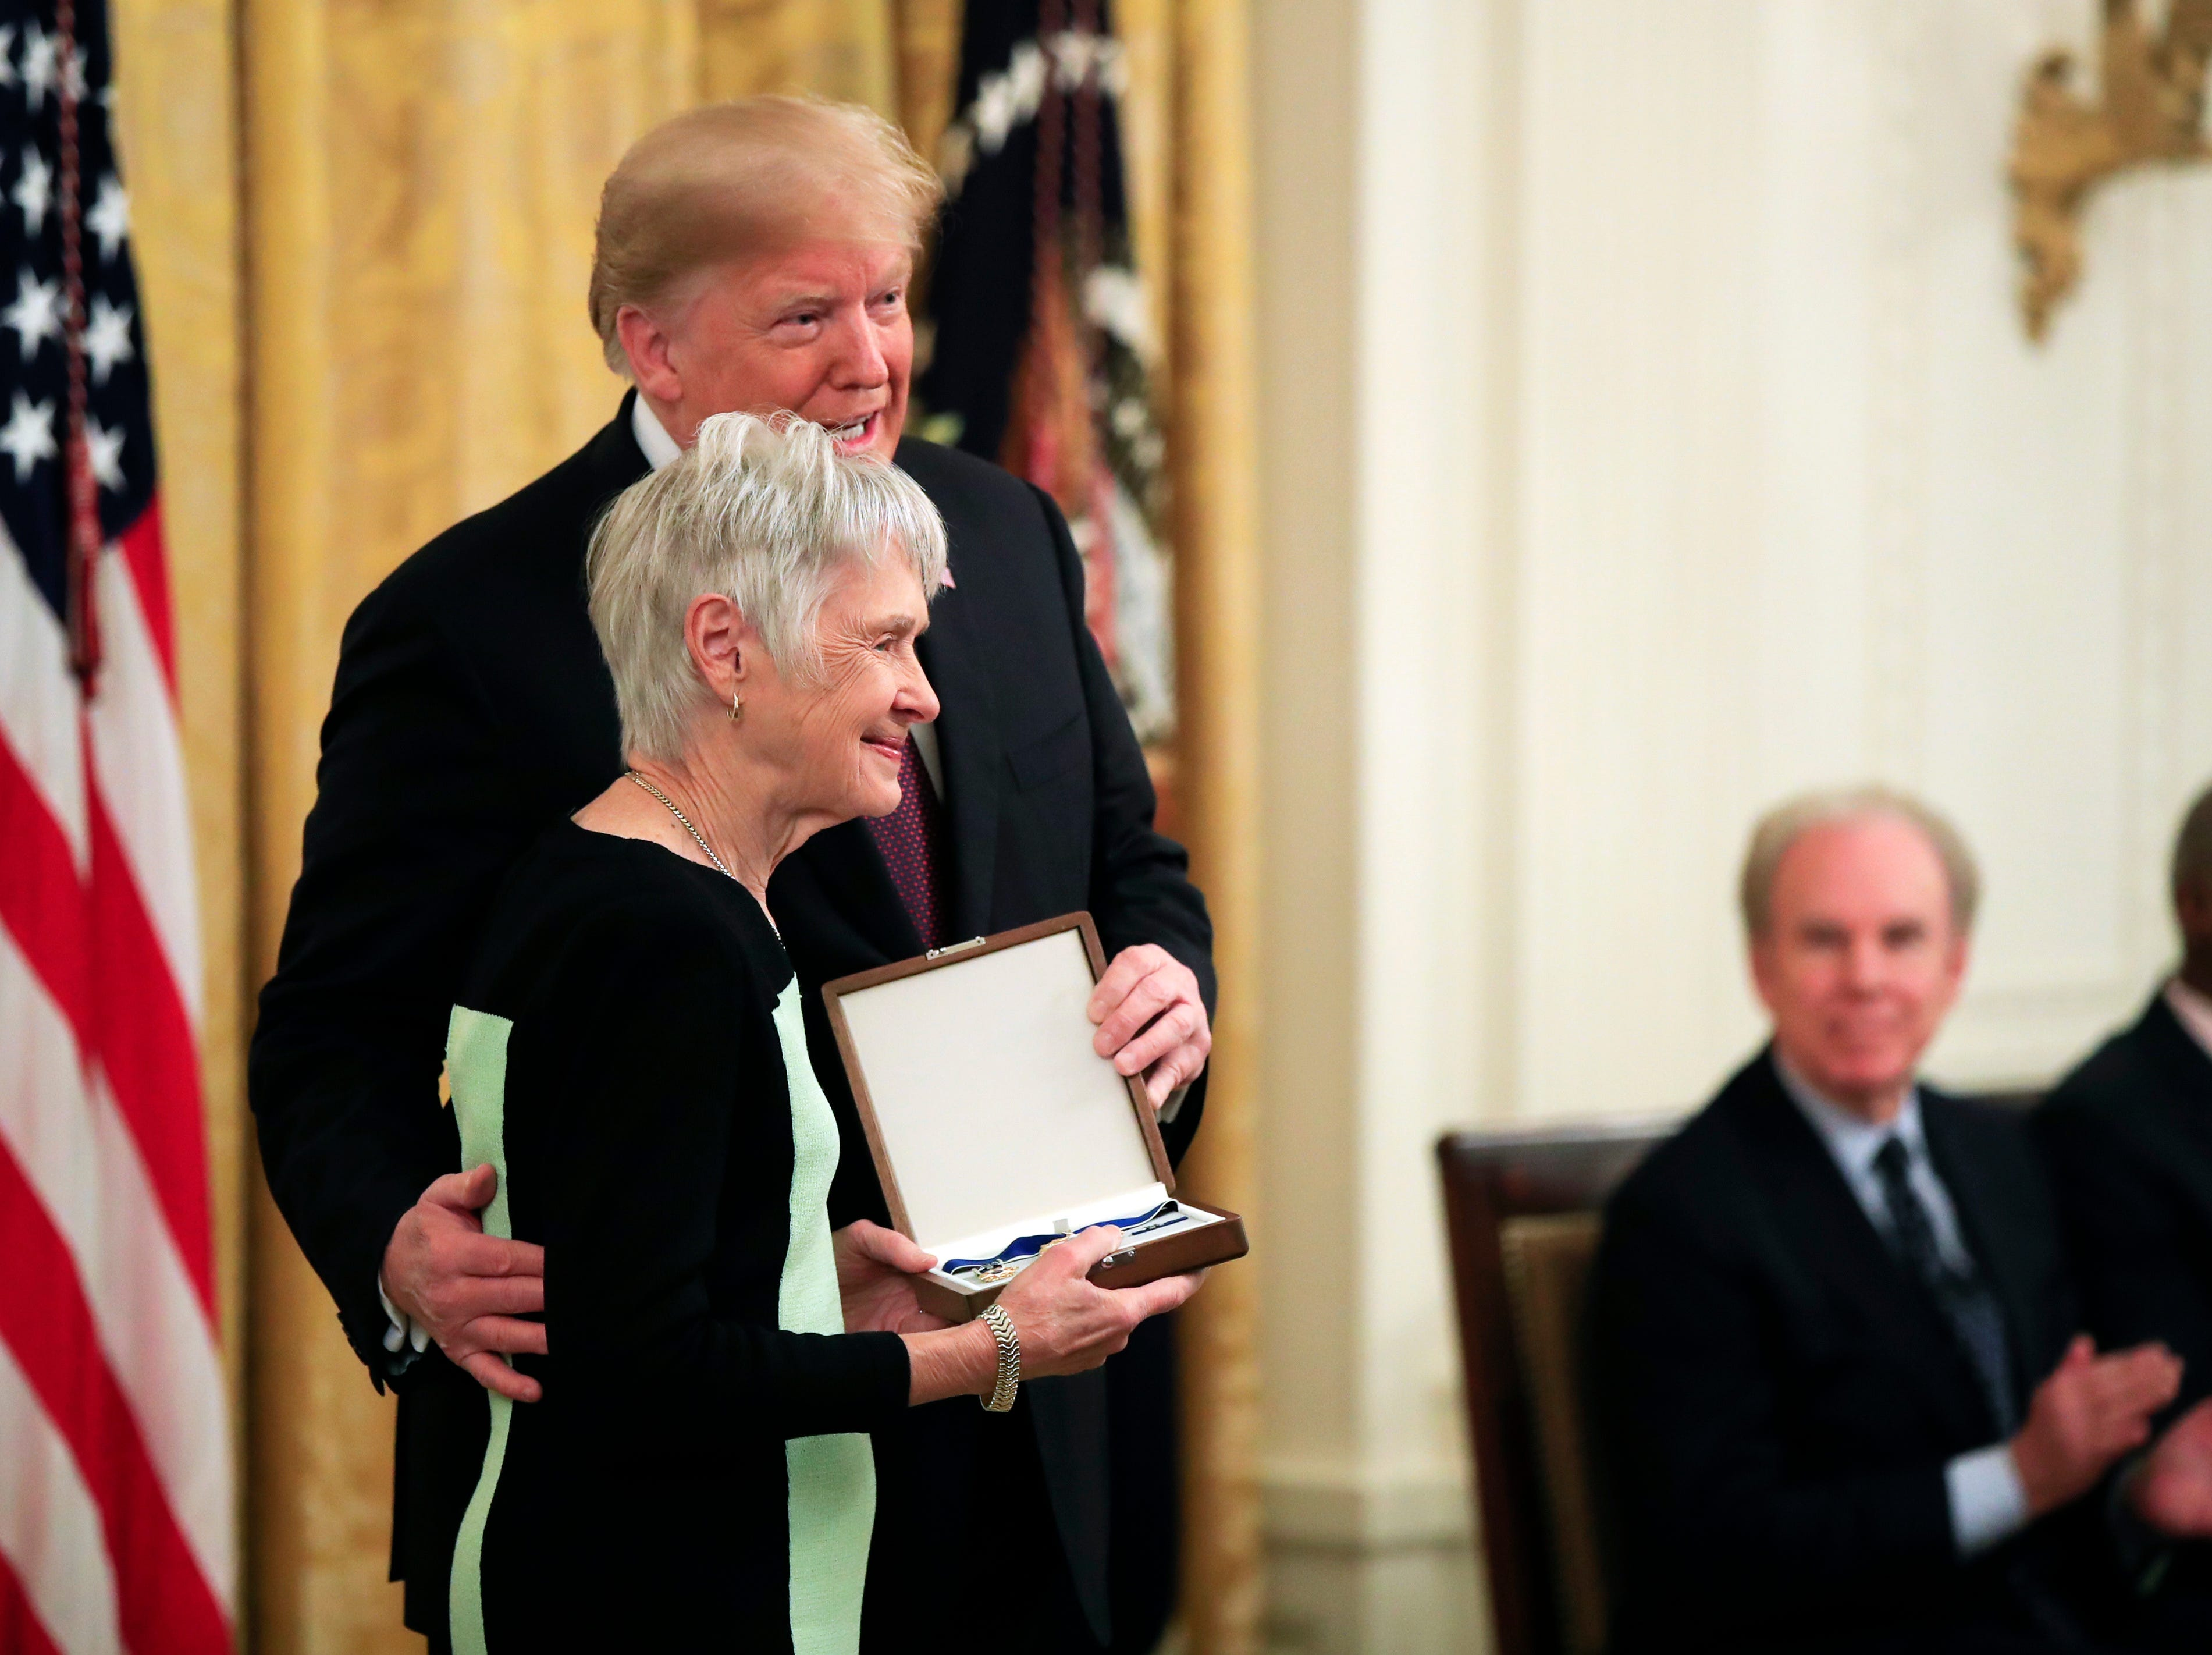 Maureen Scalia, widow of U.S. Supreme Court Justice Antonin Scalia, receives her husband's Presidential Medal of Freedom during a ceremony in the East Room of the White House, in Washington, D.C., on Friday, Nov. 16, 2018.